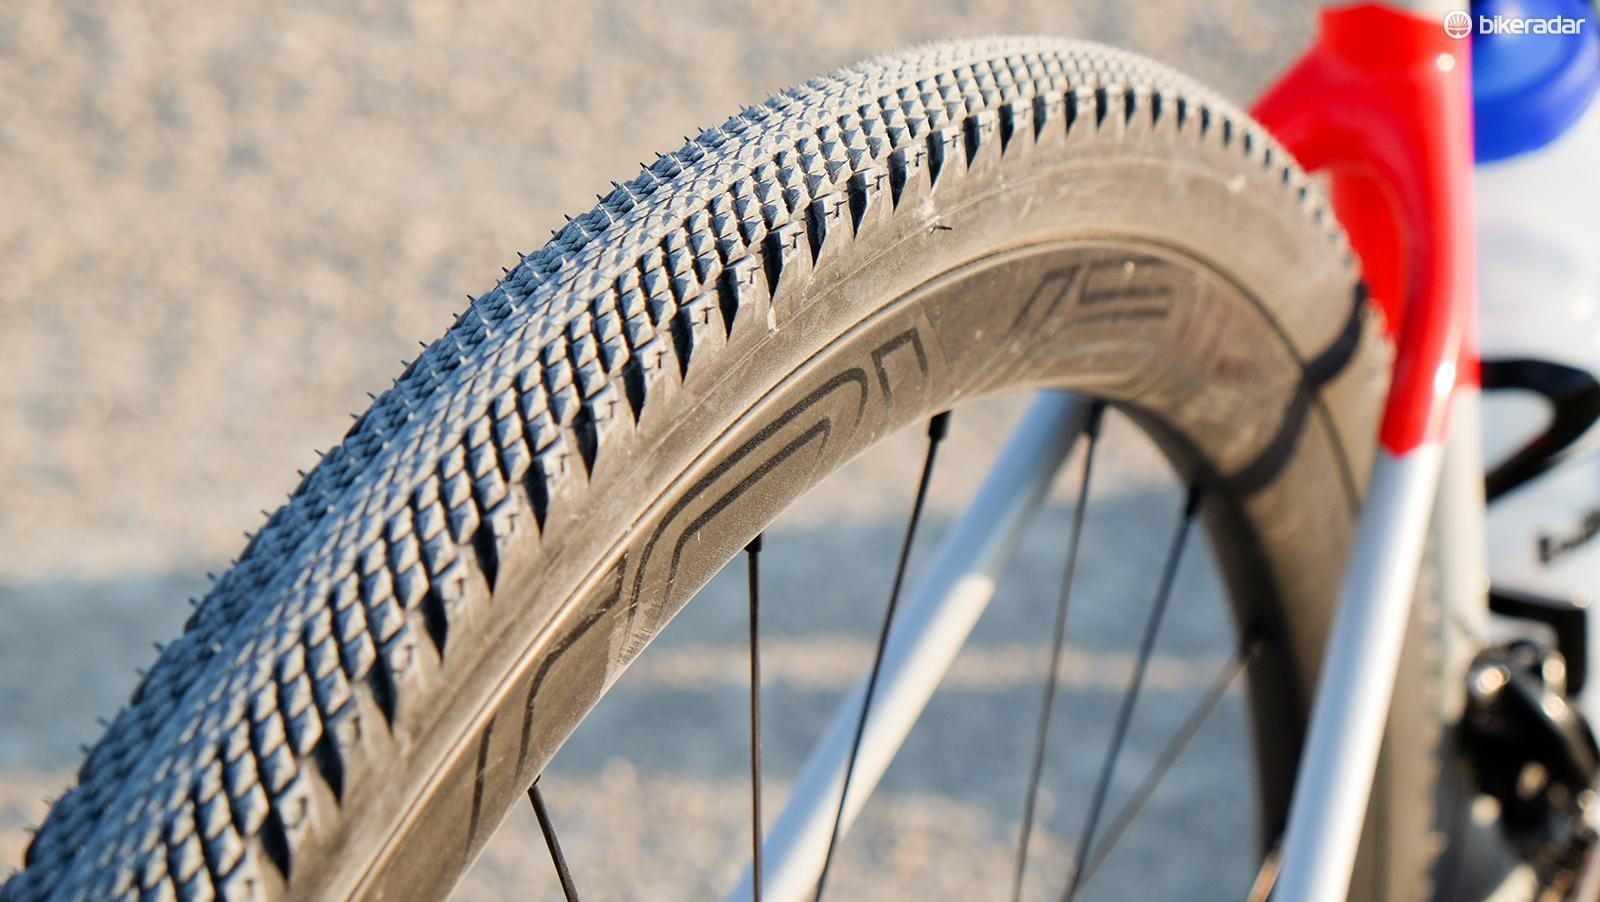 While the Trigger Pro favors speed over outright grip, cornering performance is predictable on hardpacked dirt roads